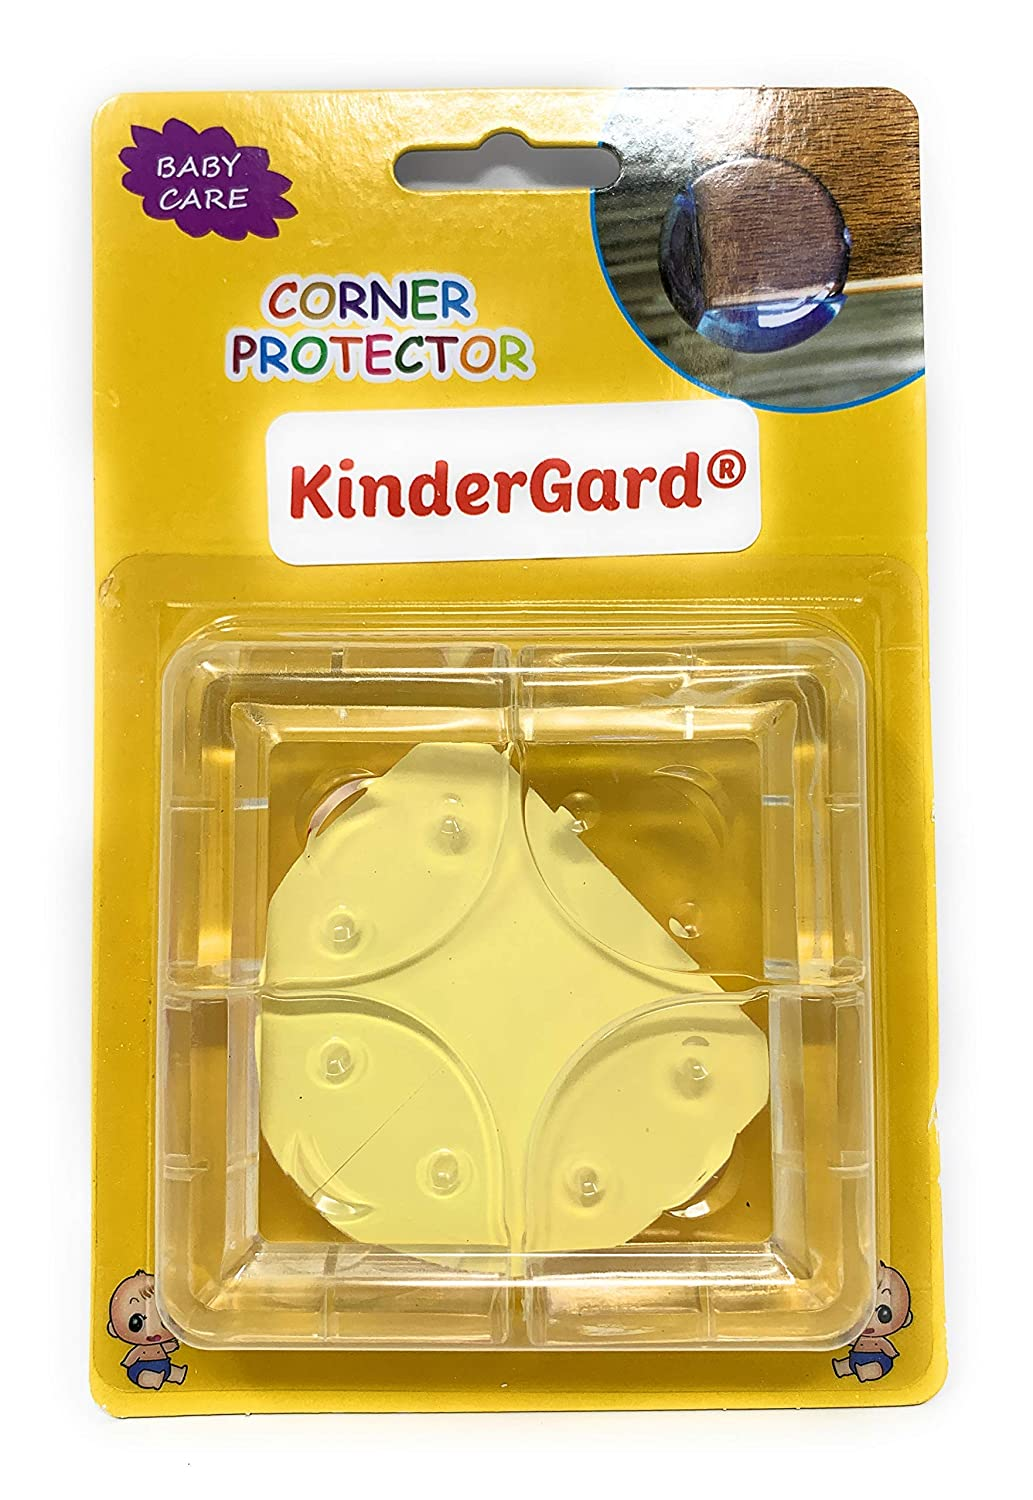 (Set of 4) Corner Protector BabyProof Safety, Medical Grade Clear Edge Softeners, Child Proof Corner Bumpers, Toddler, Home, Table, Adhesive, DIY, Easy, Guards, Accident Prevention by KinderGard